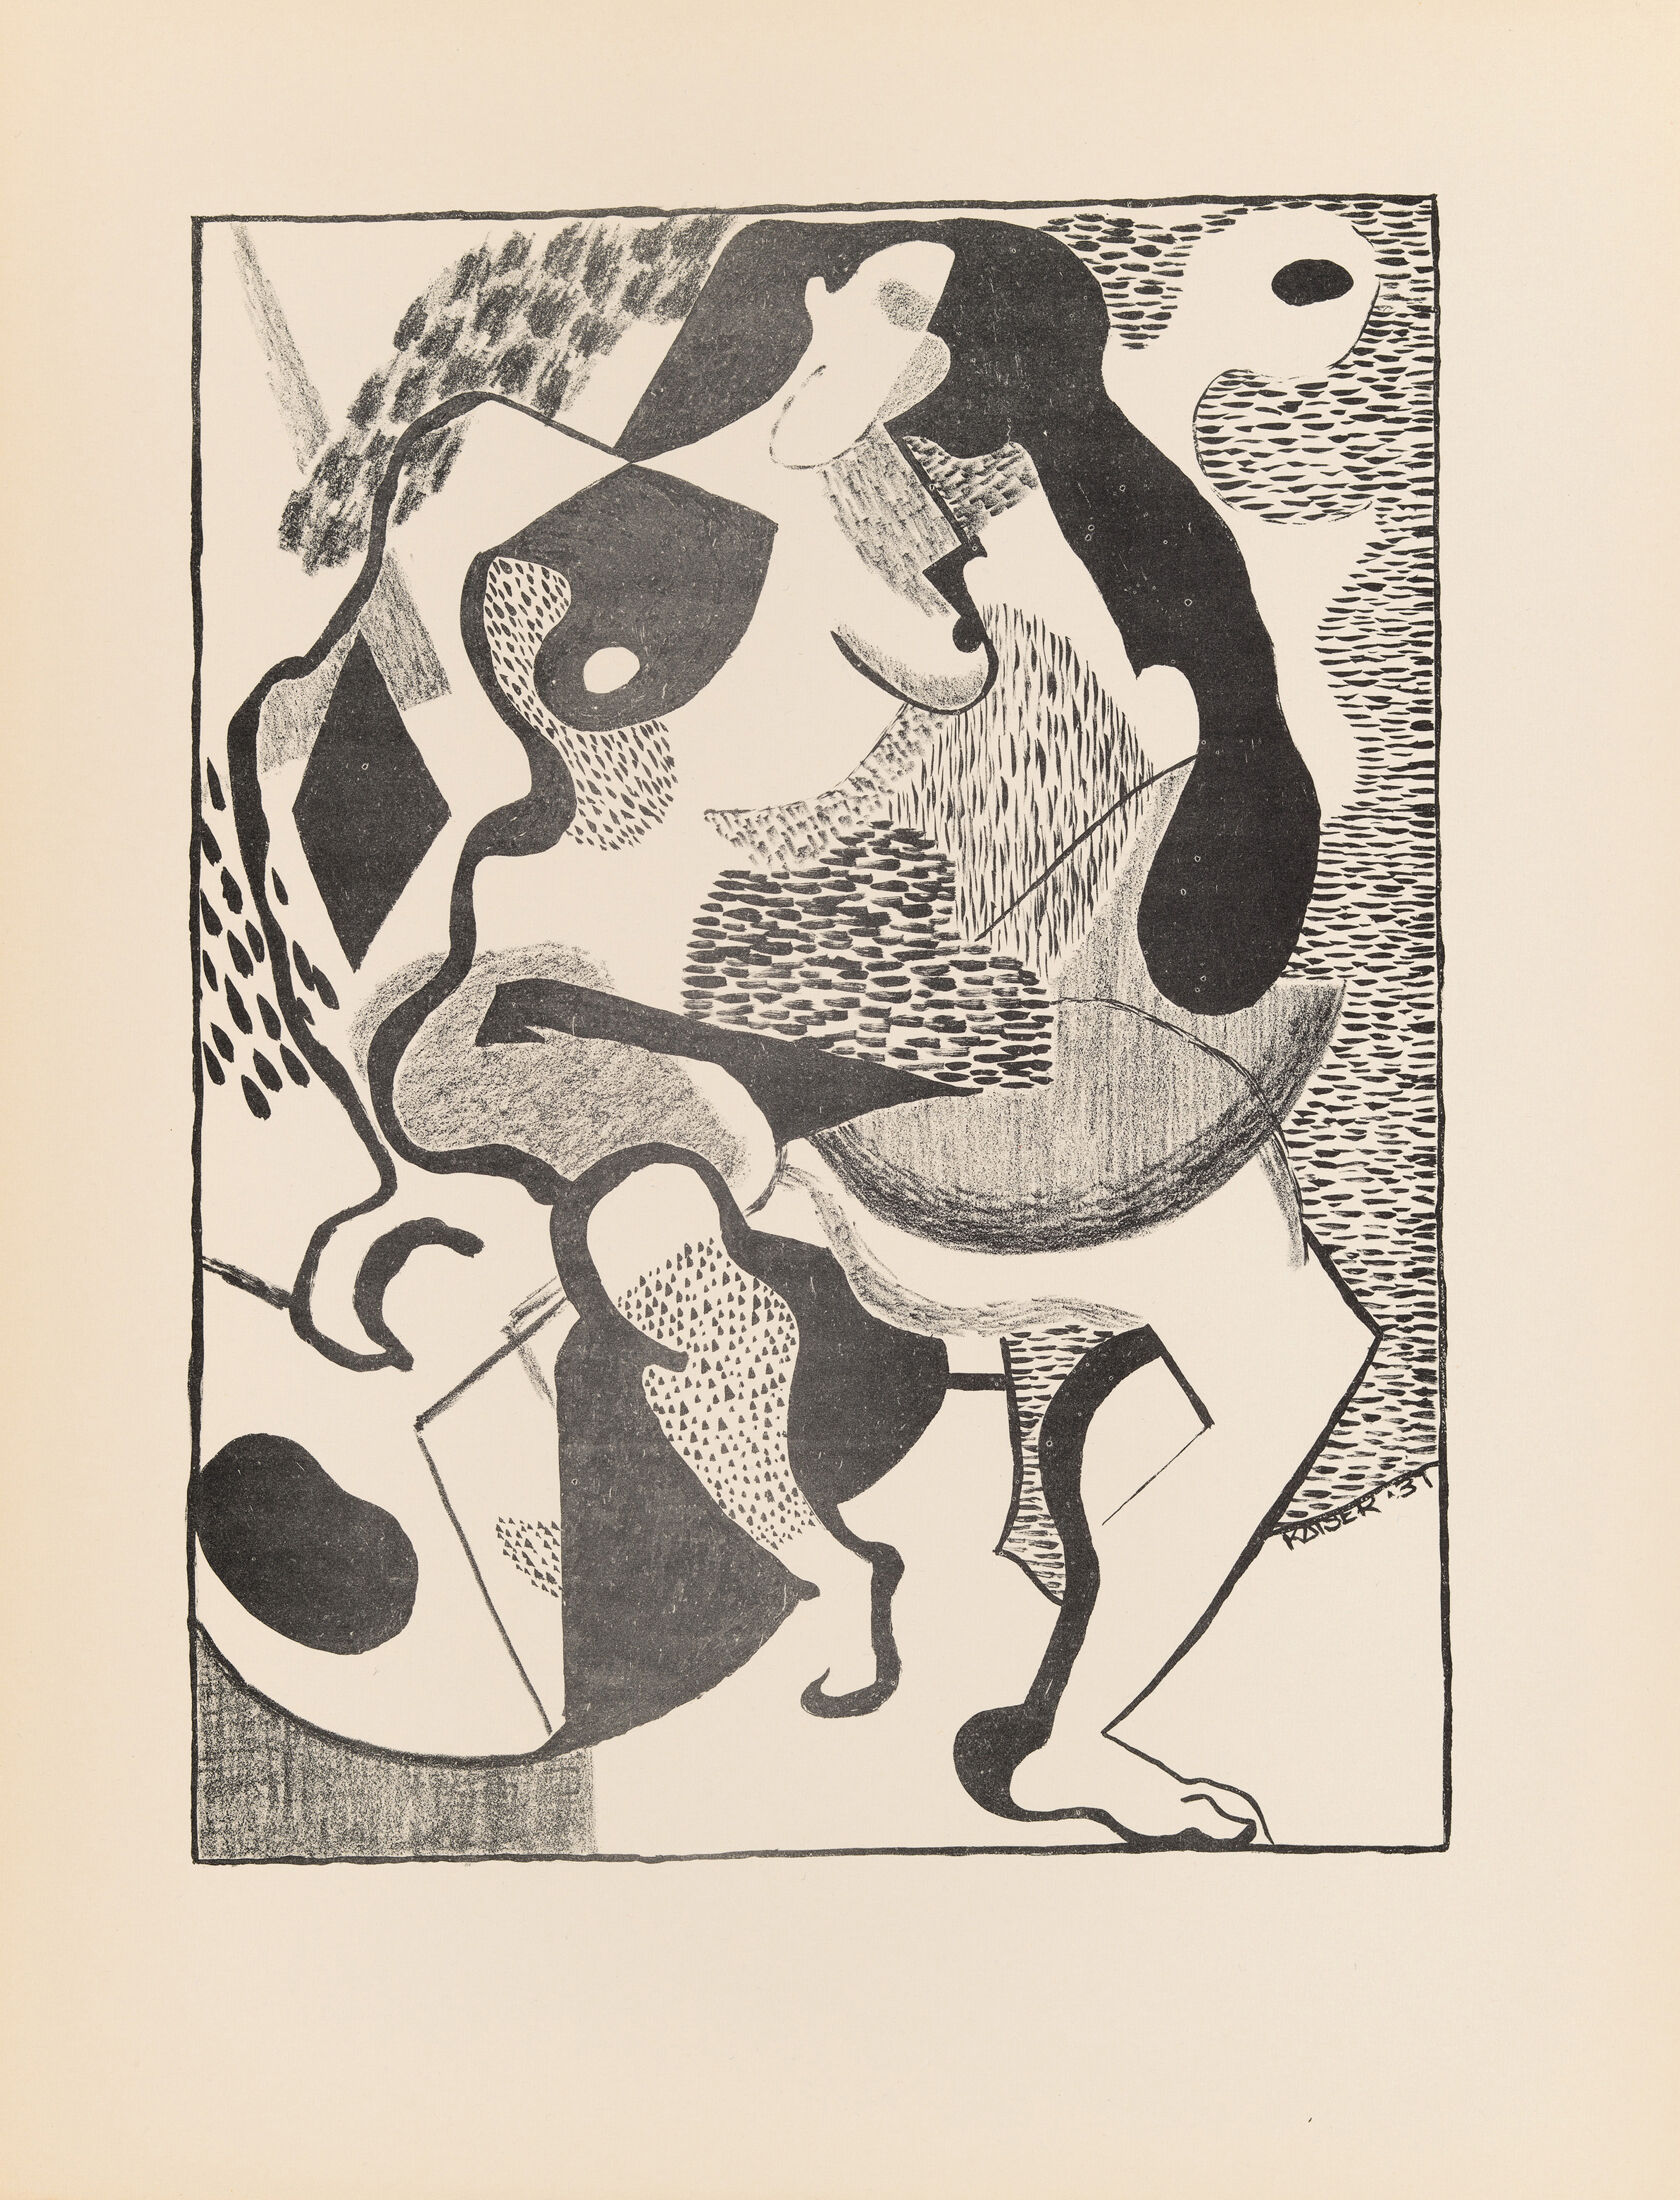 Black-and-white abstract drawing of a nude female figure, segmented into abstract, geometric shapes of varying patterns and shading.